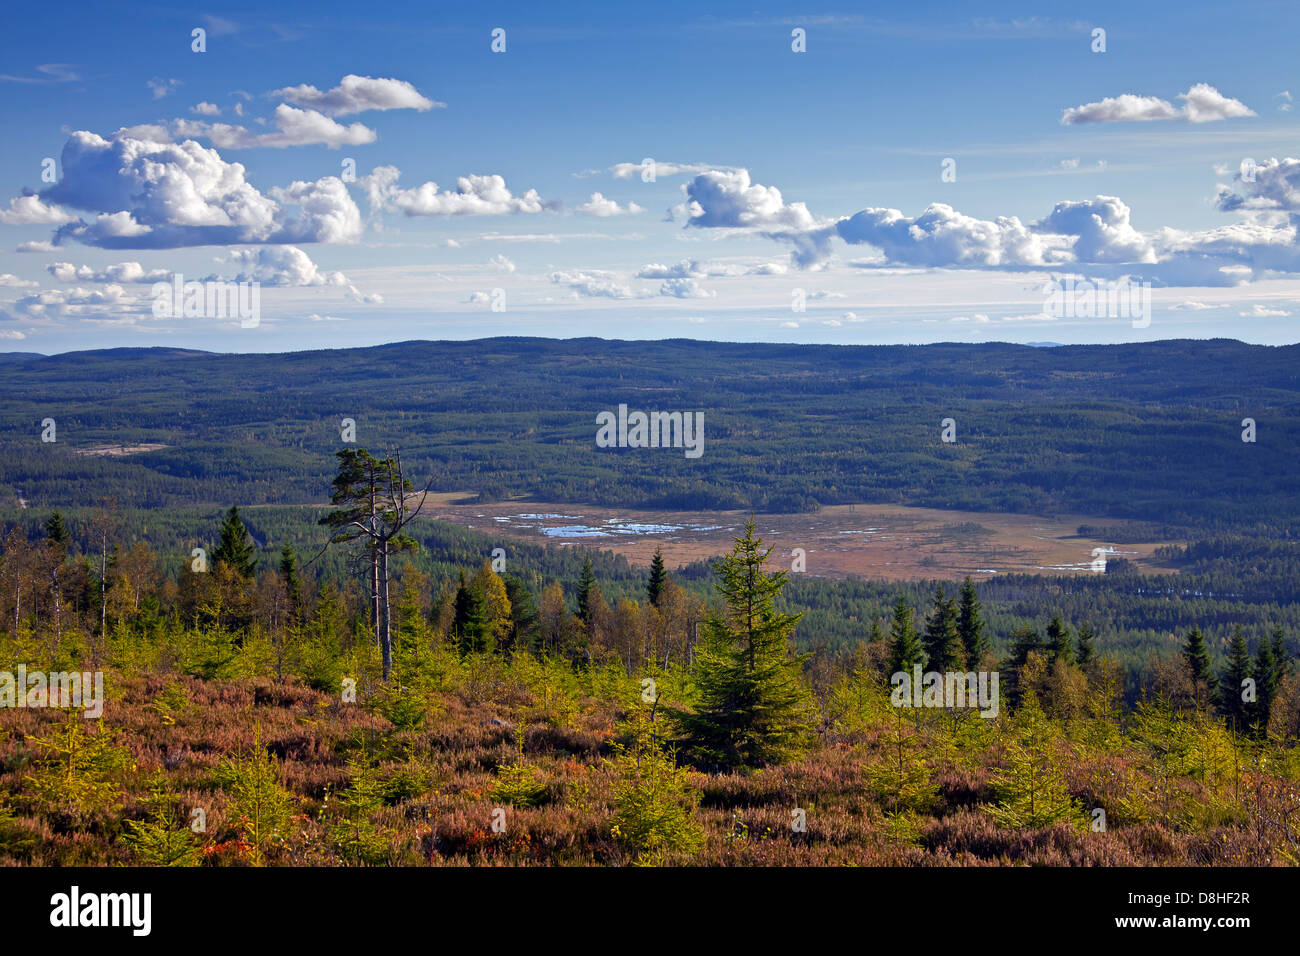 Coniferous forest with Scots Pines (Pinus sylvestris), Dalarna, Sweden - Stock Image